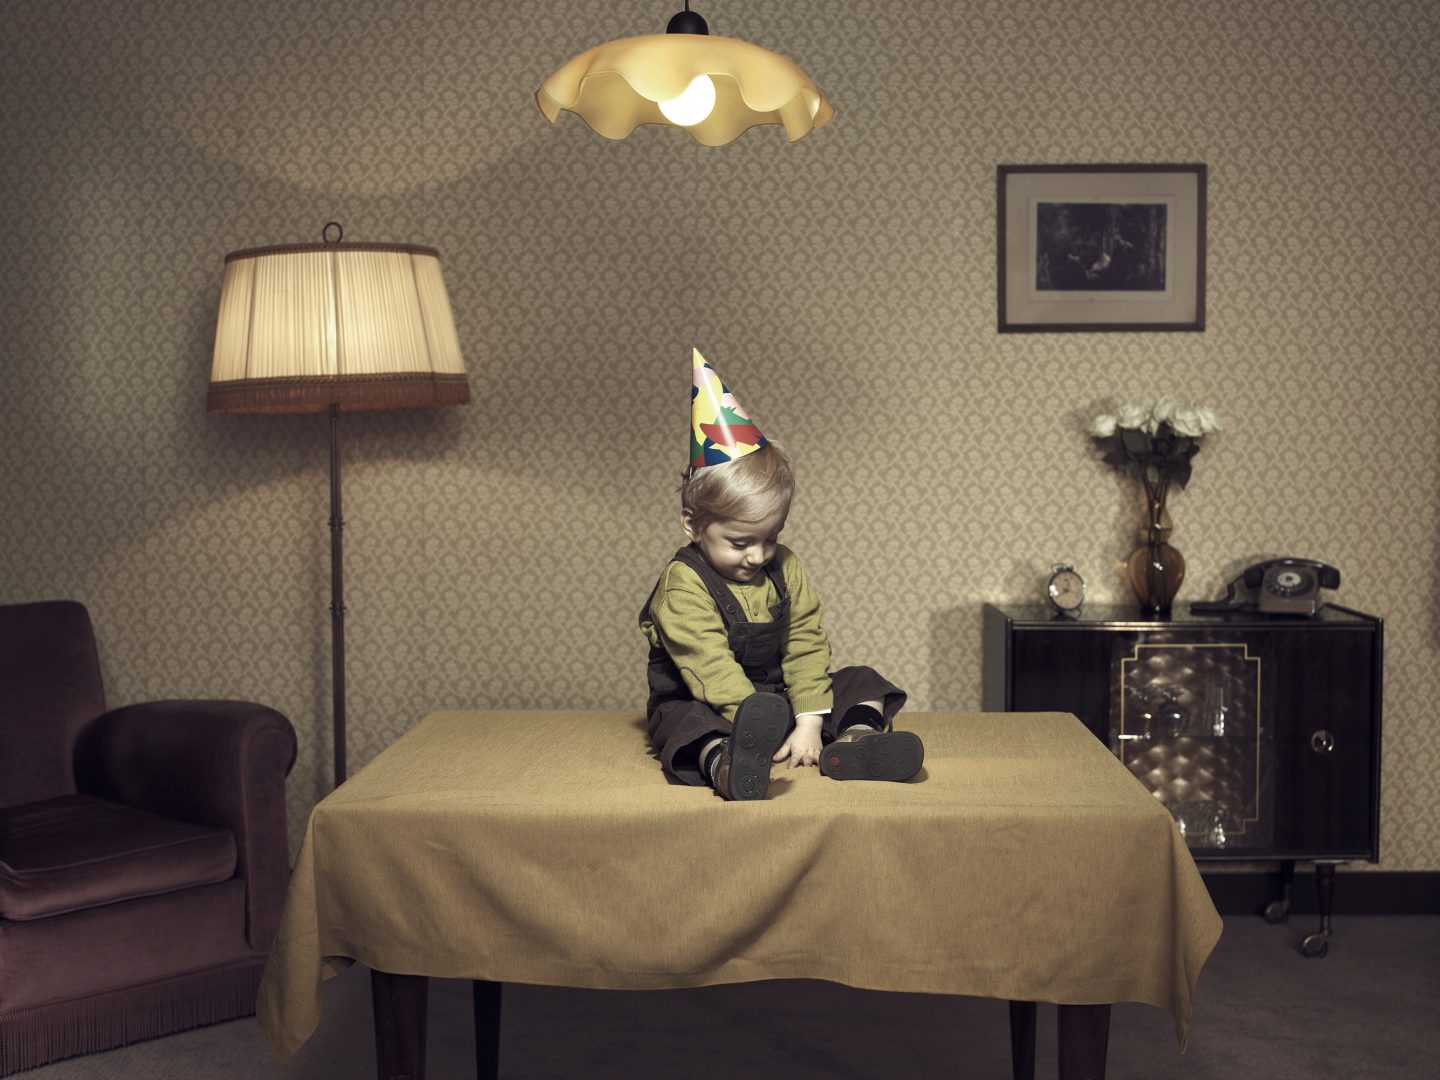 Kid sitting on table in room 42 by Stefan Rappo